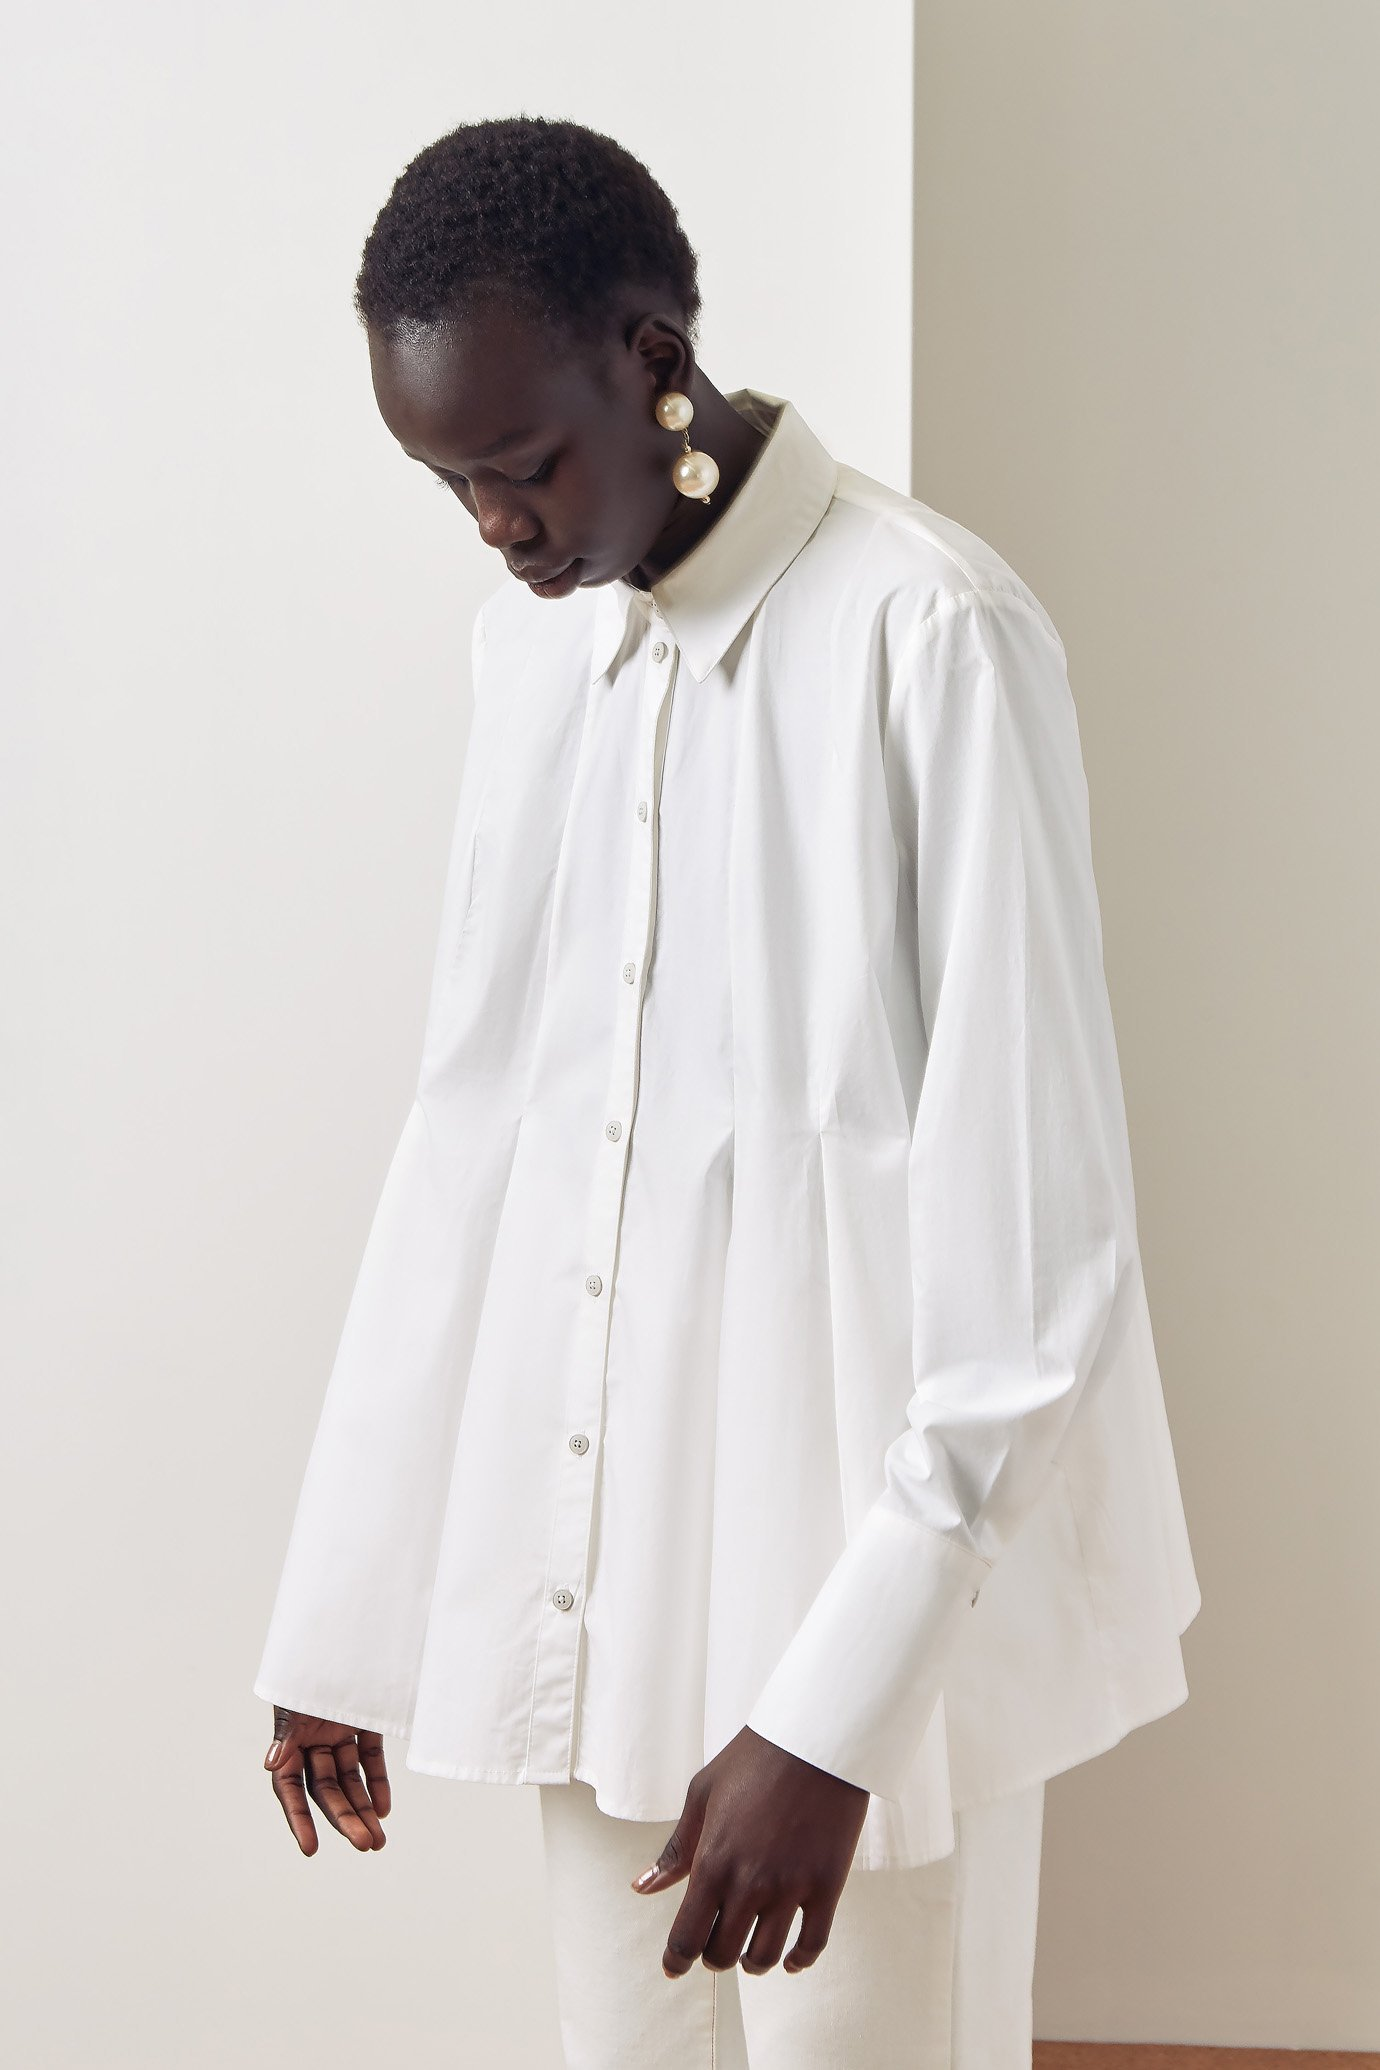 pages_shirt-white-lookbook-6376_800x1200@2x.jpg